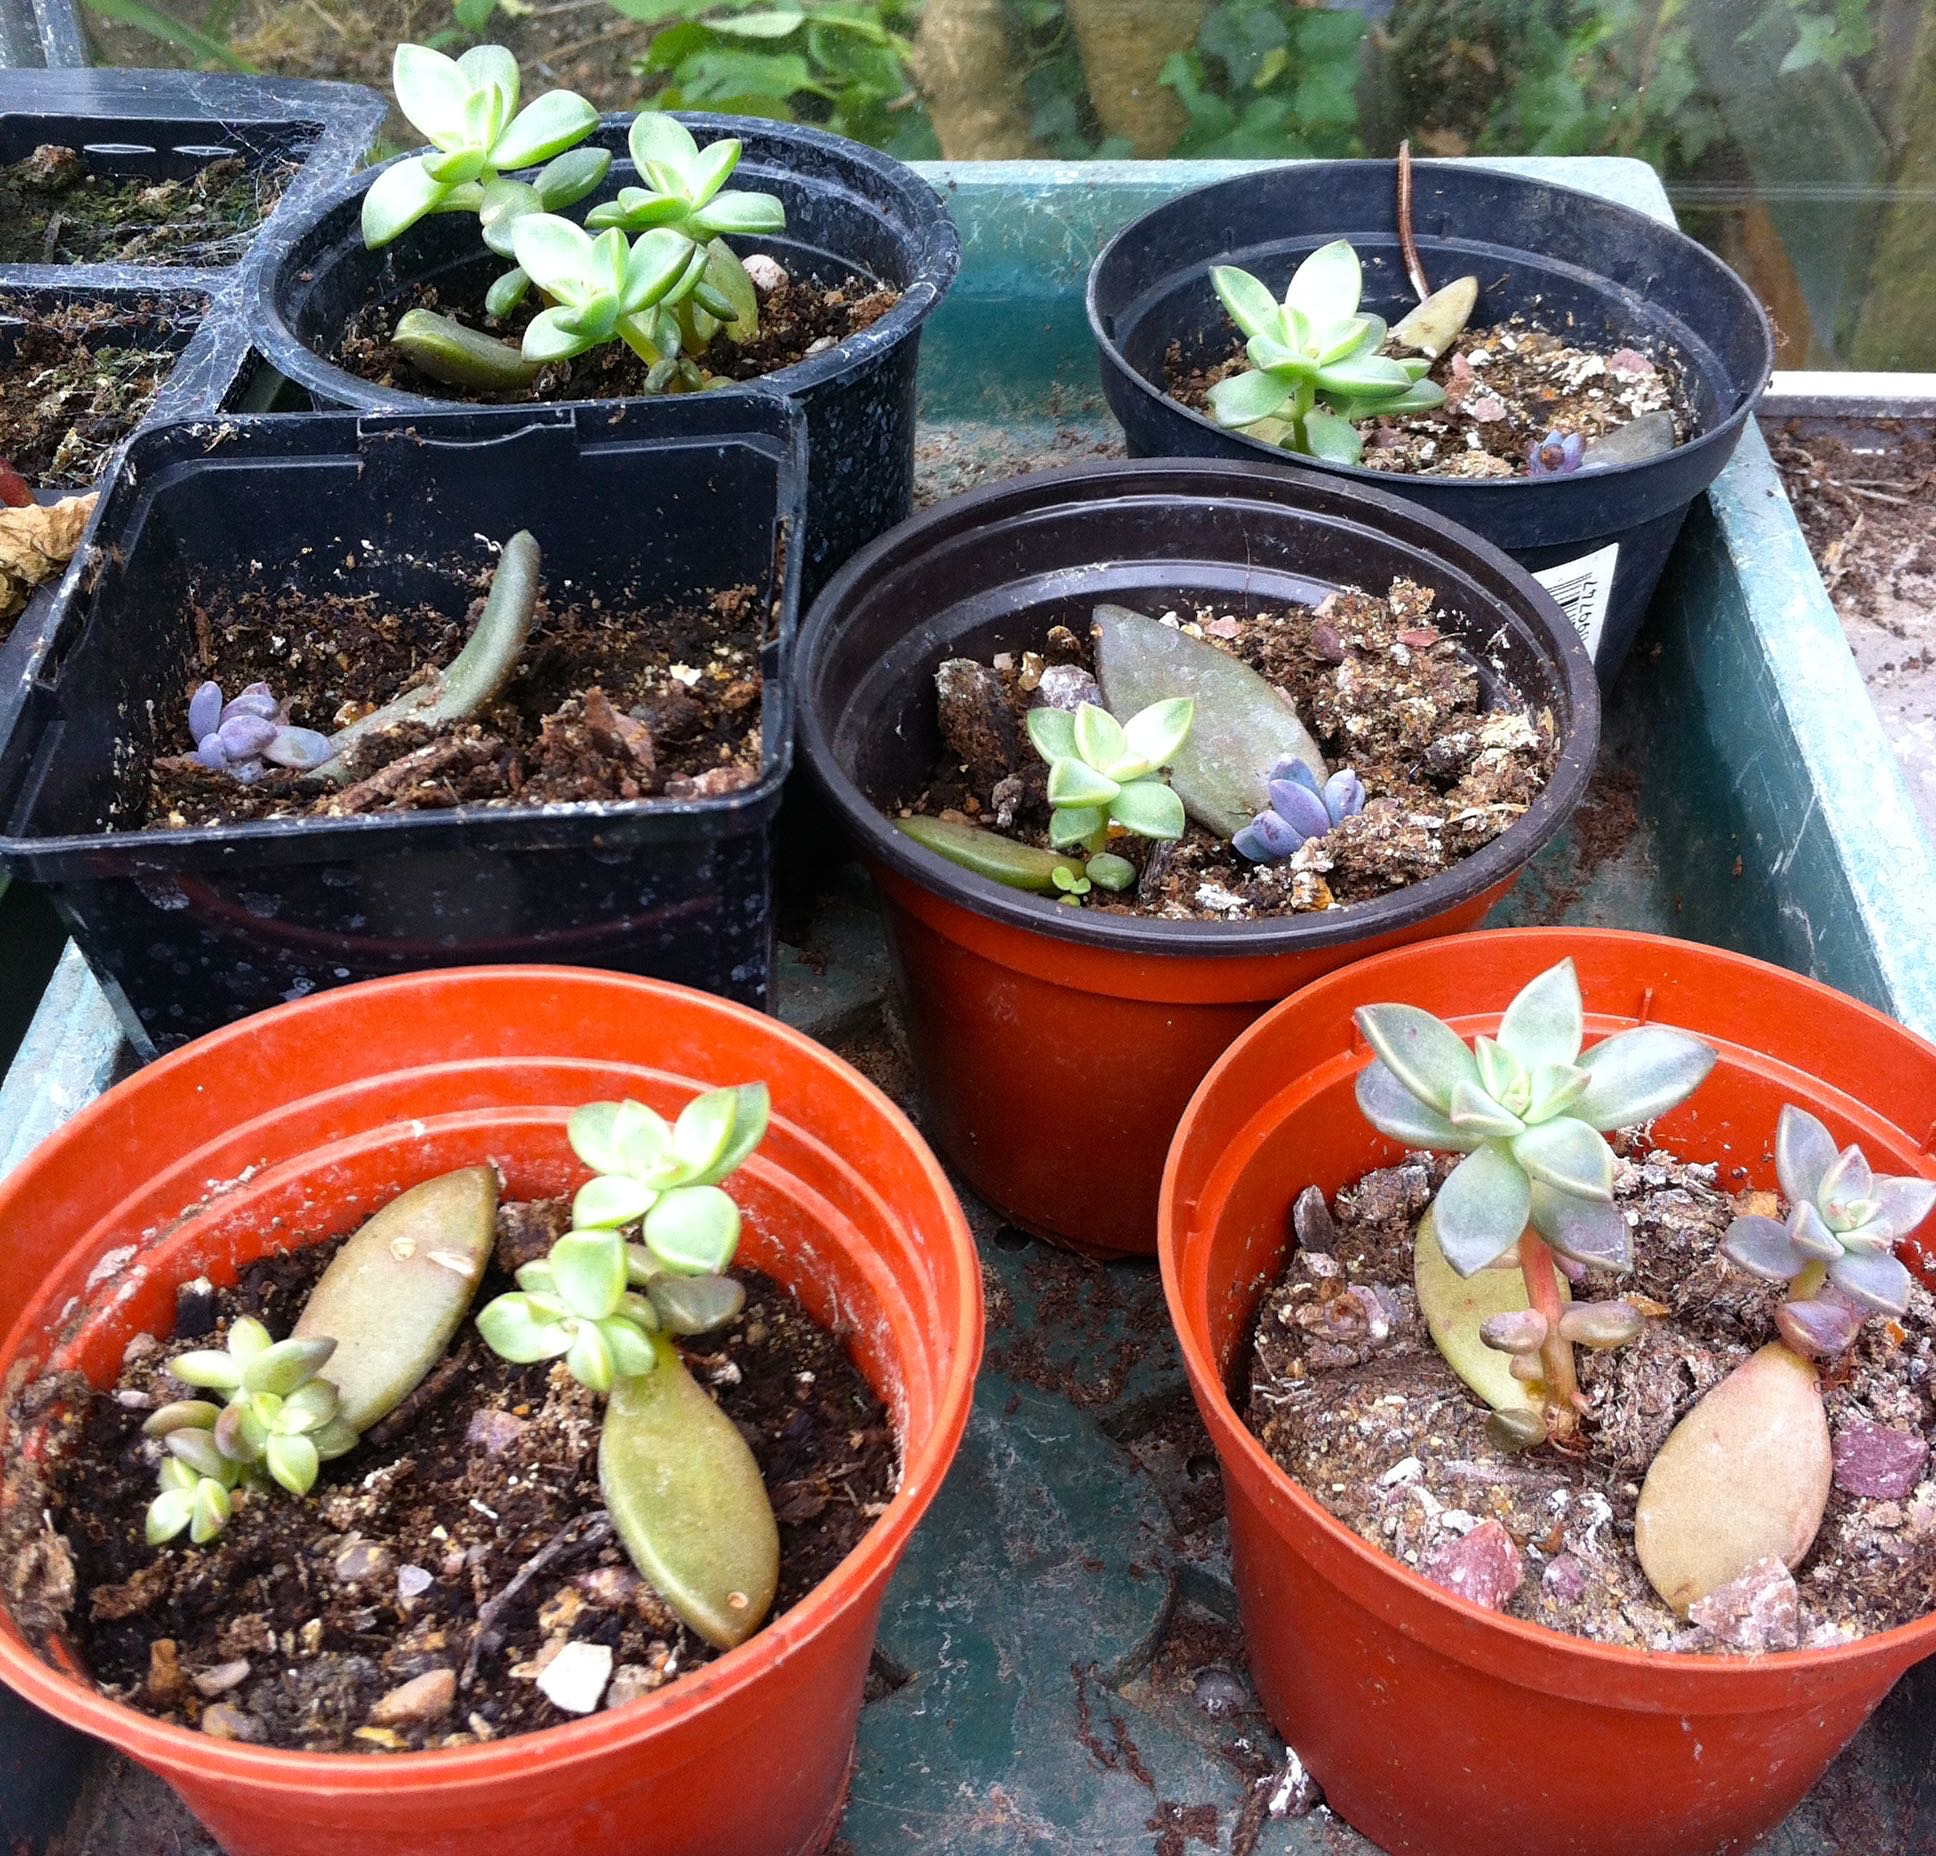 Actually lots of new plants with very little effort